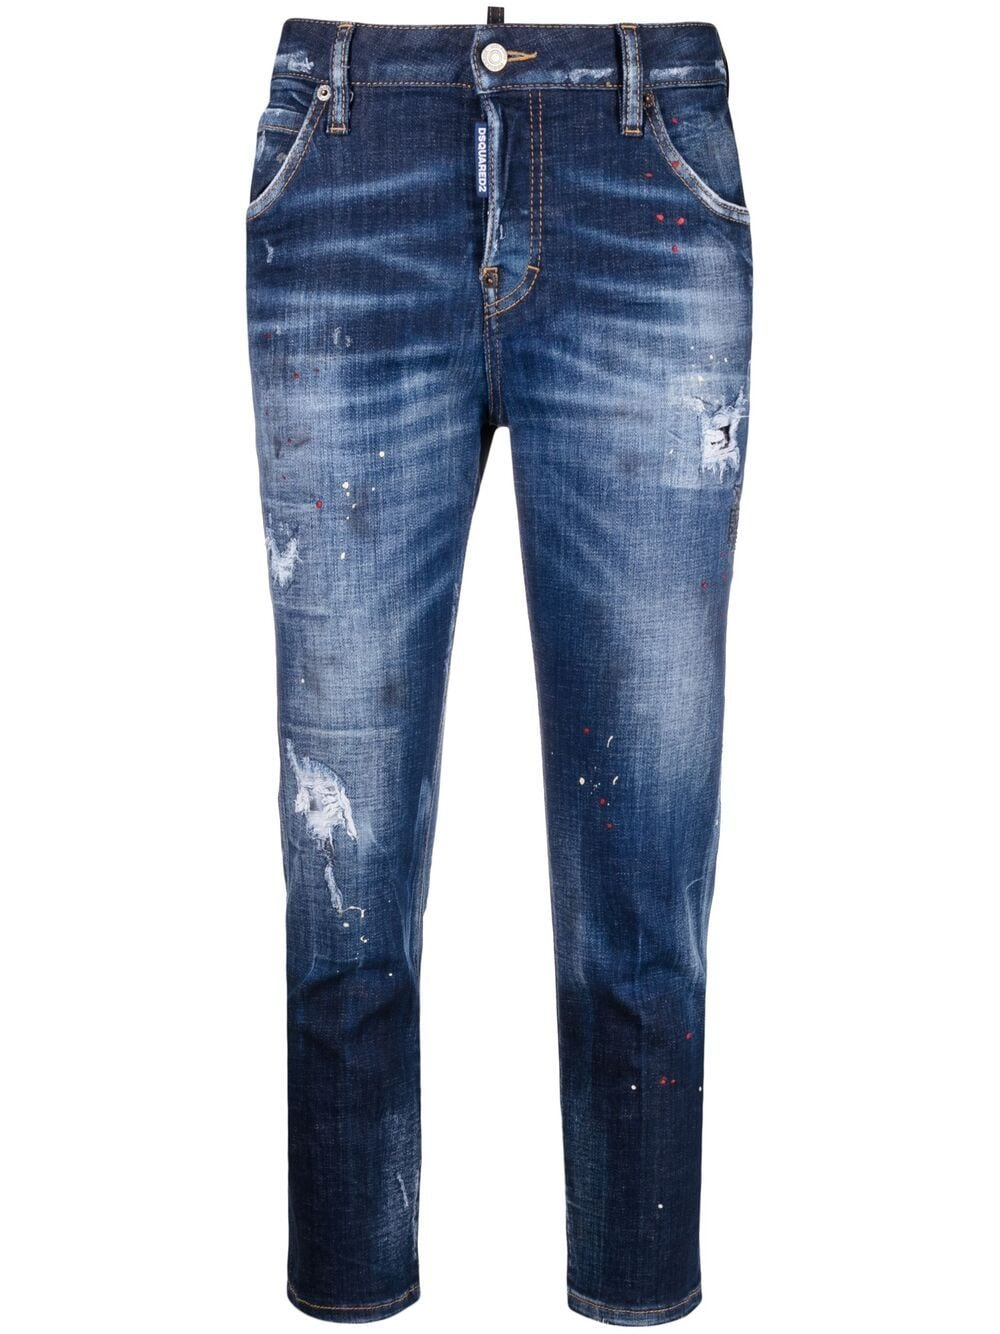 Dsquared2 Cool Girl cropped jeans - Blau von Dsquared2